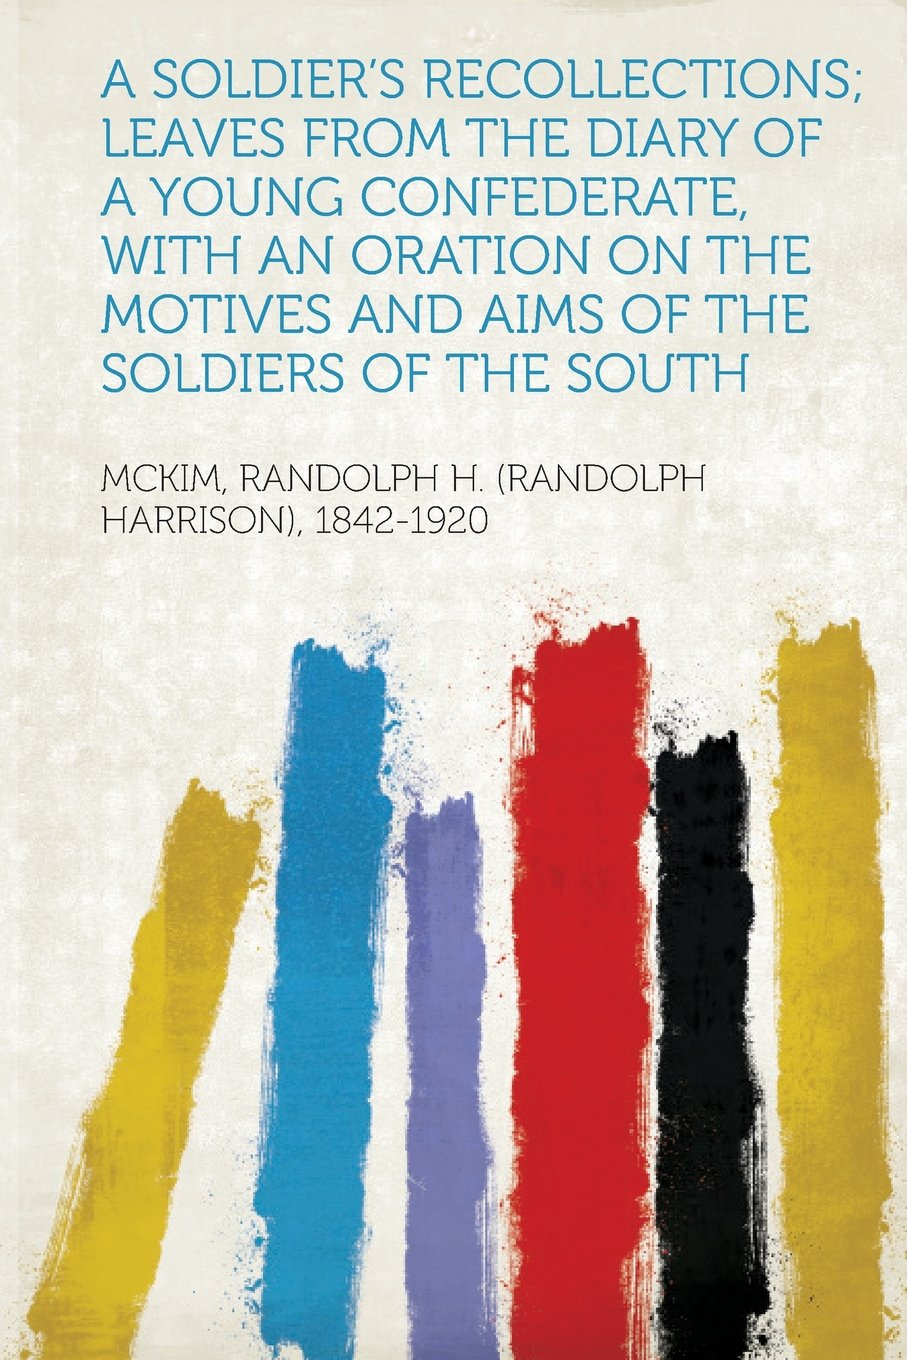 Download A Soldier's Recollections; Leaves from the Diary of a Young Confederate, with an Oration on the Motives and Aims of the Soldiers of the South pdf